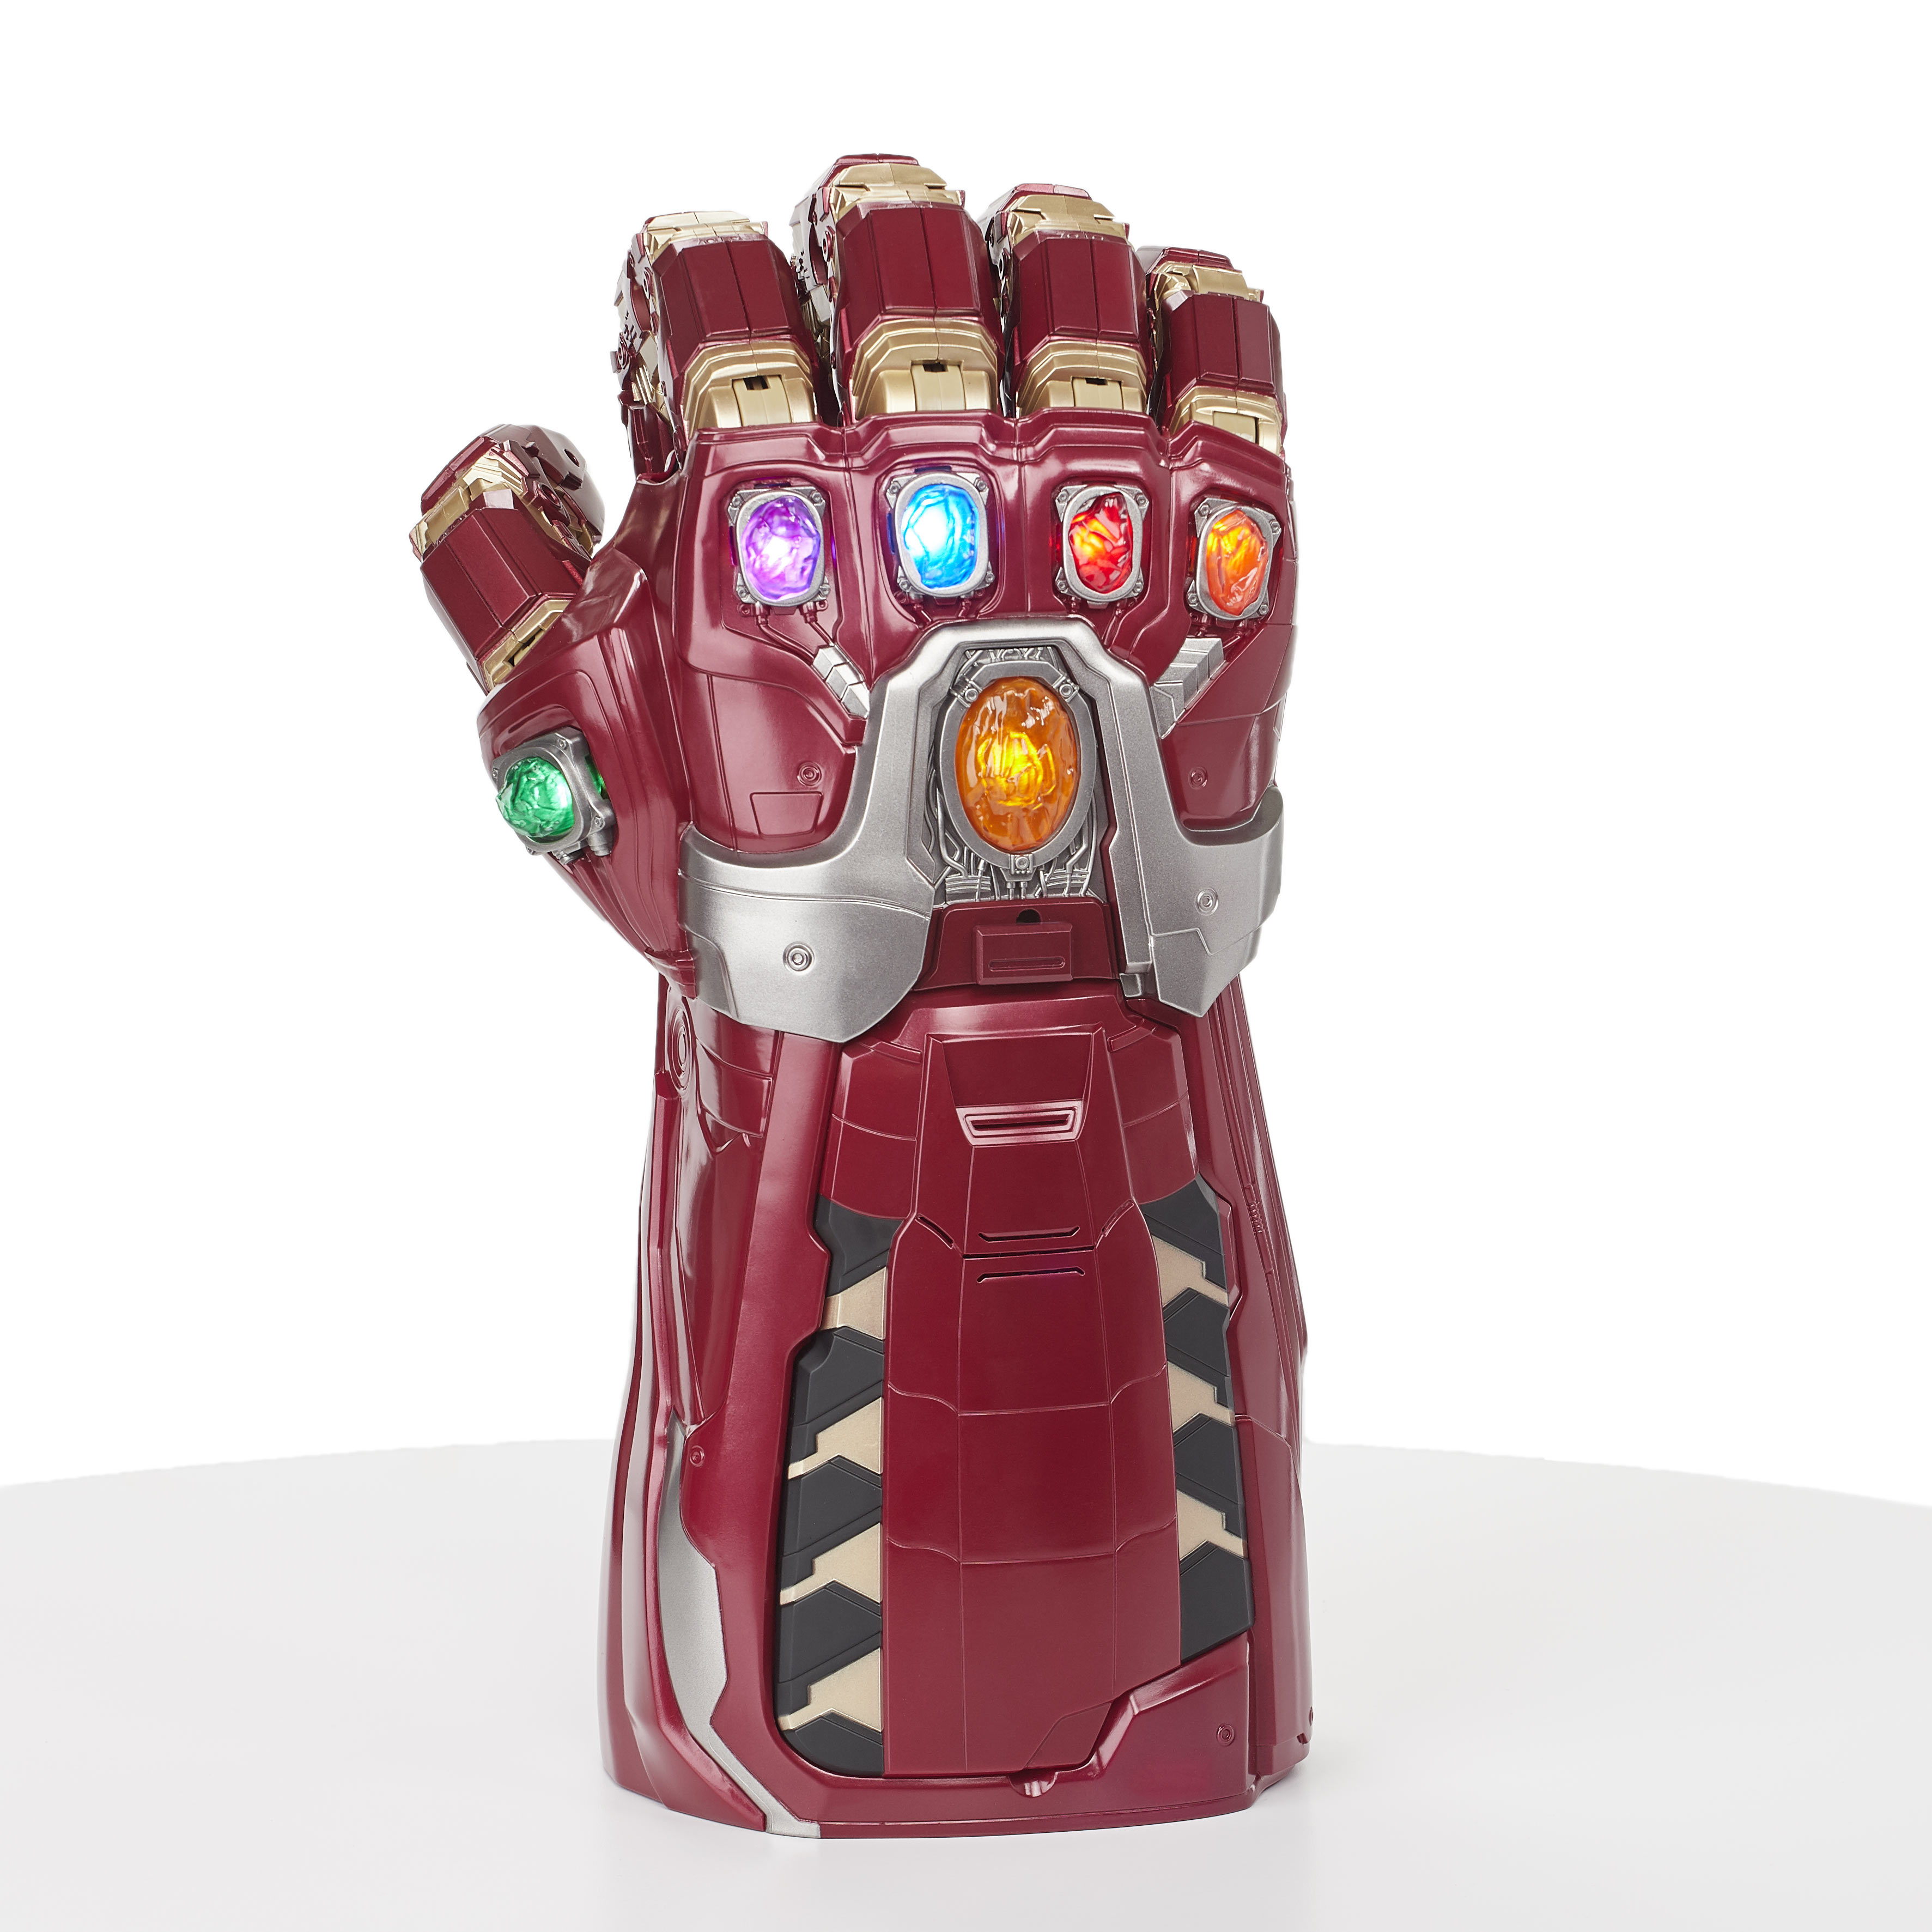 Marvel Avengers Legend Serie finale di Iron Man Elettronico PUGNO Power Gauntlet